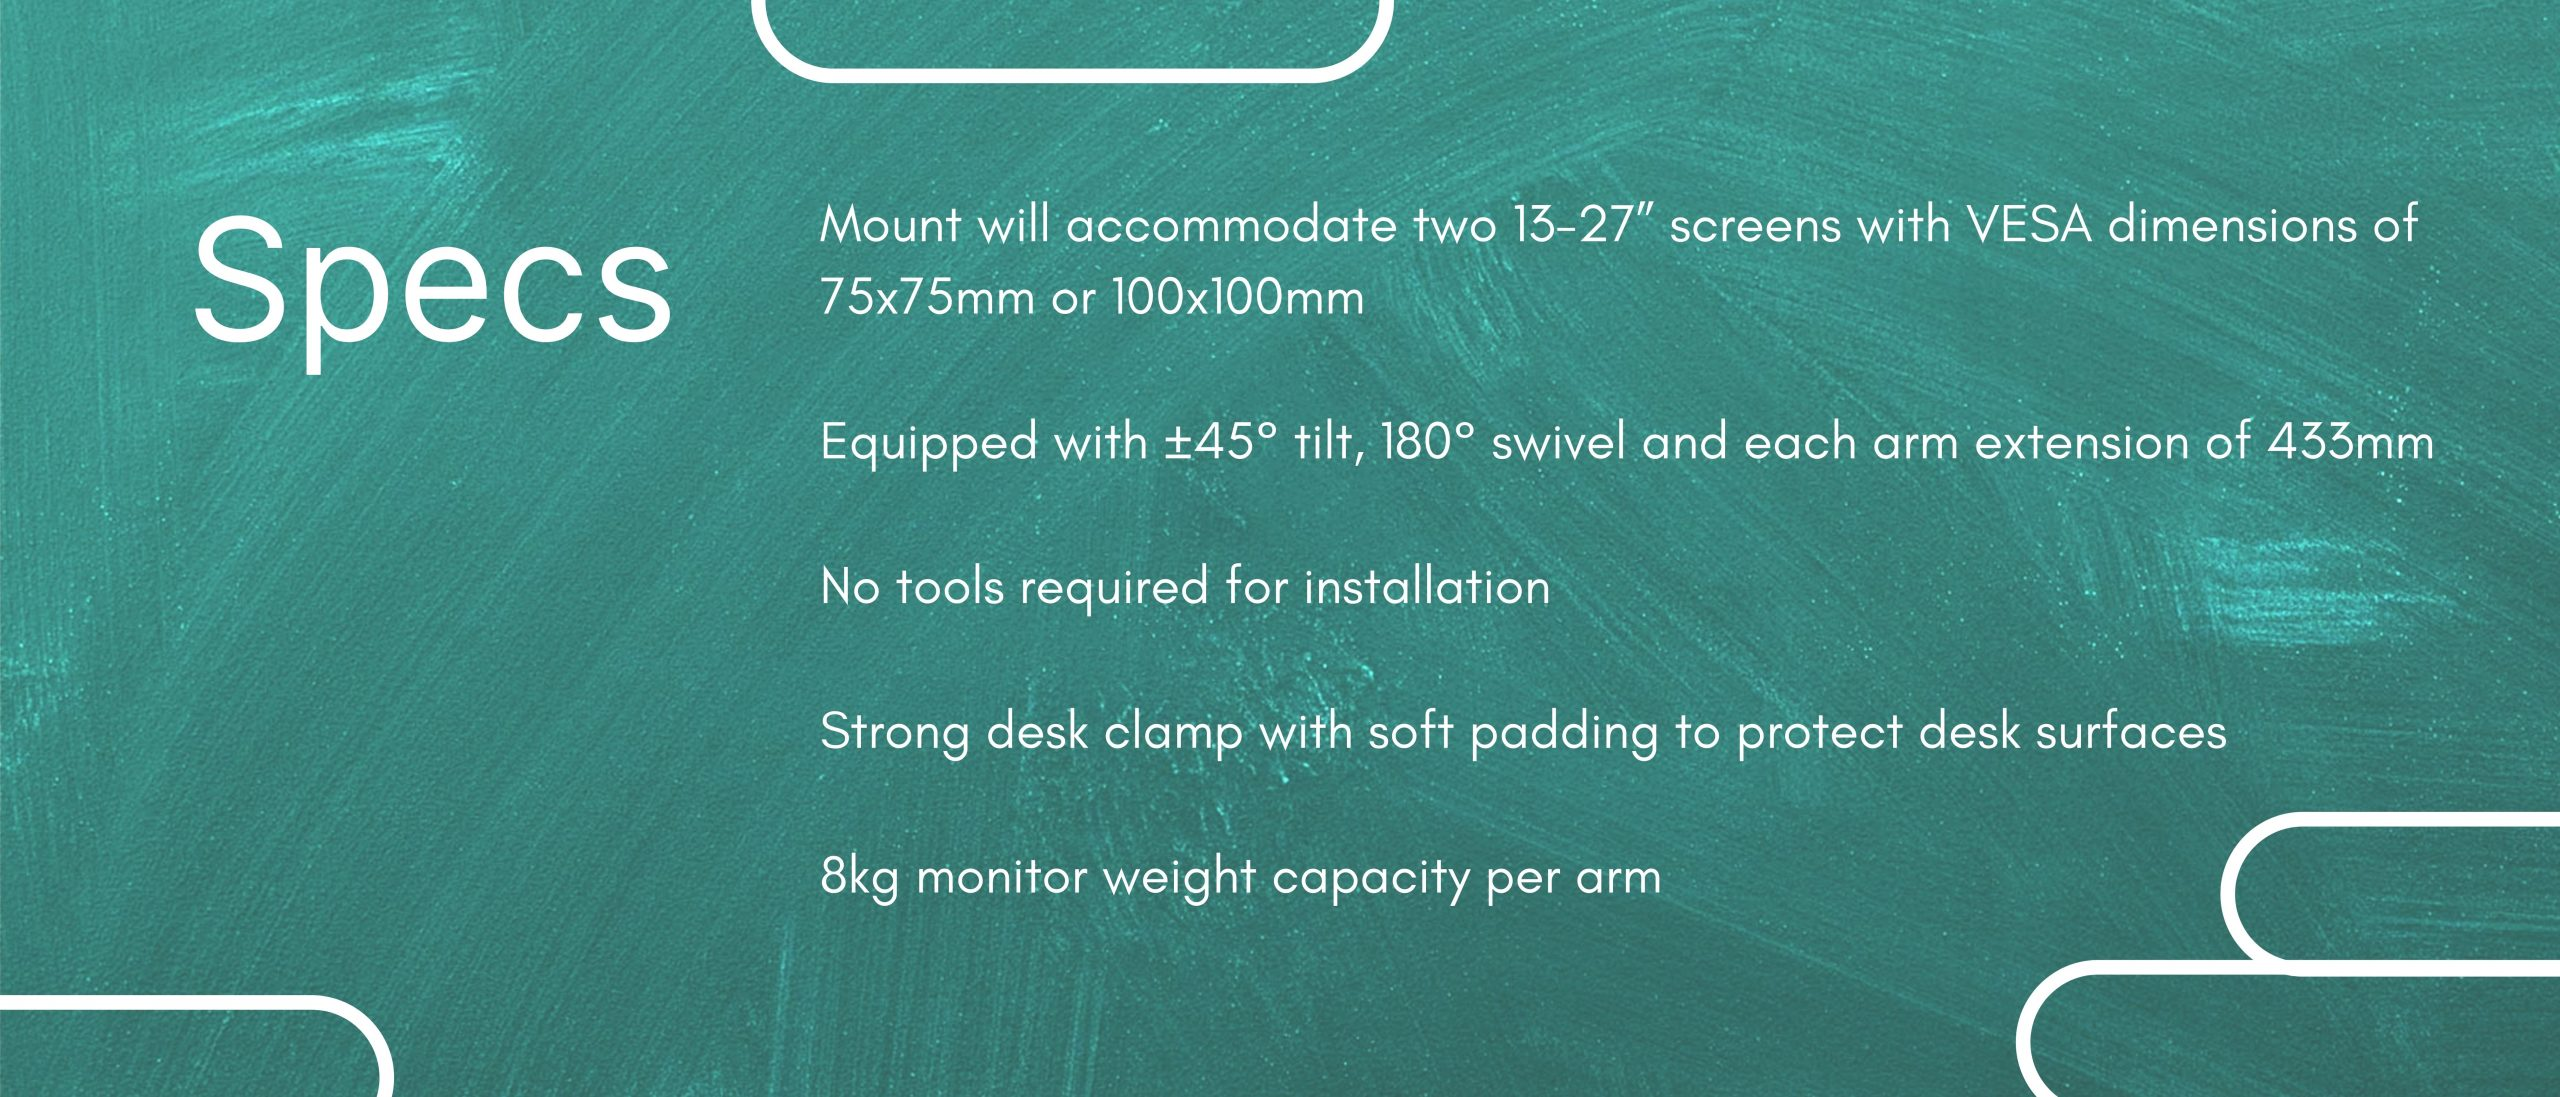 Dual arm monitor mount specifications